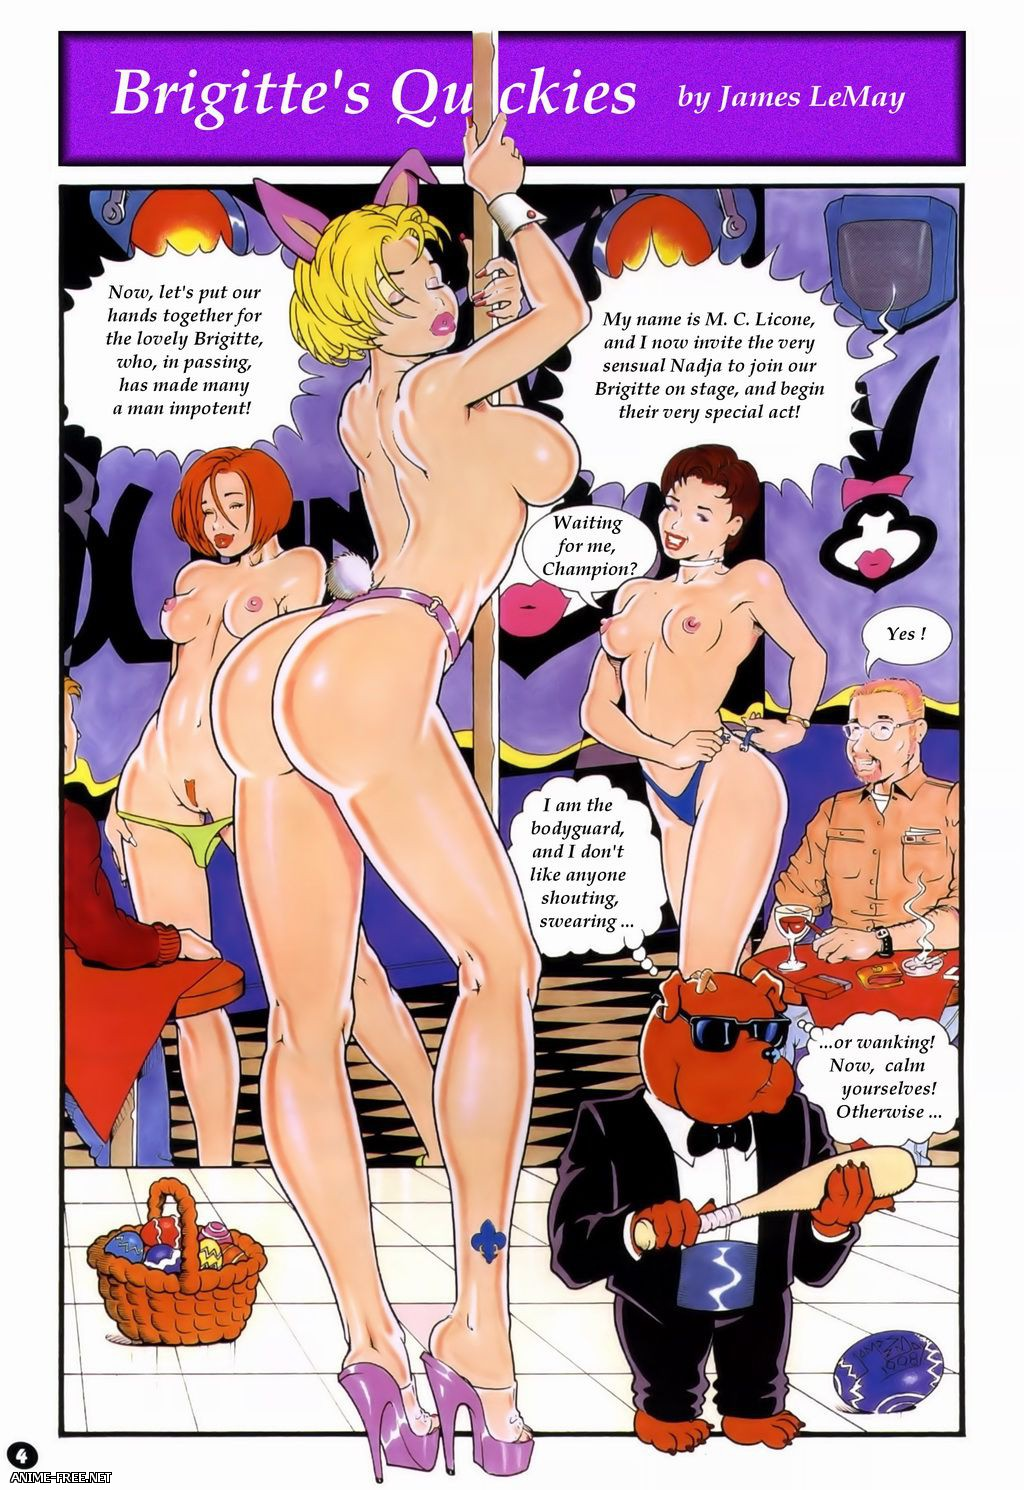 Collection comics by James Lemay / Сборник комиксов от James Lemay [uncen] [ENG,FR,RUS] Porn Comics